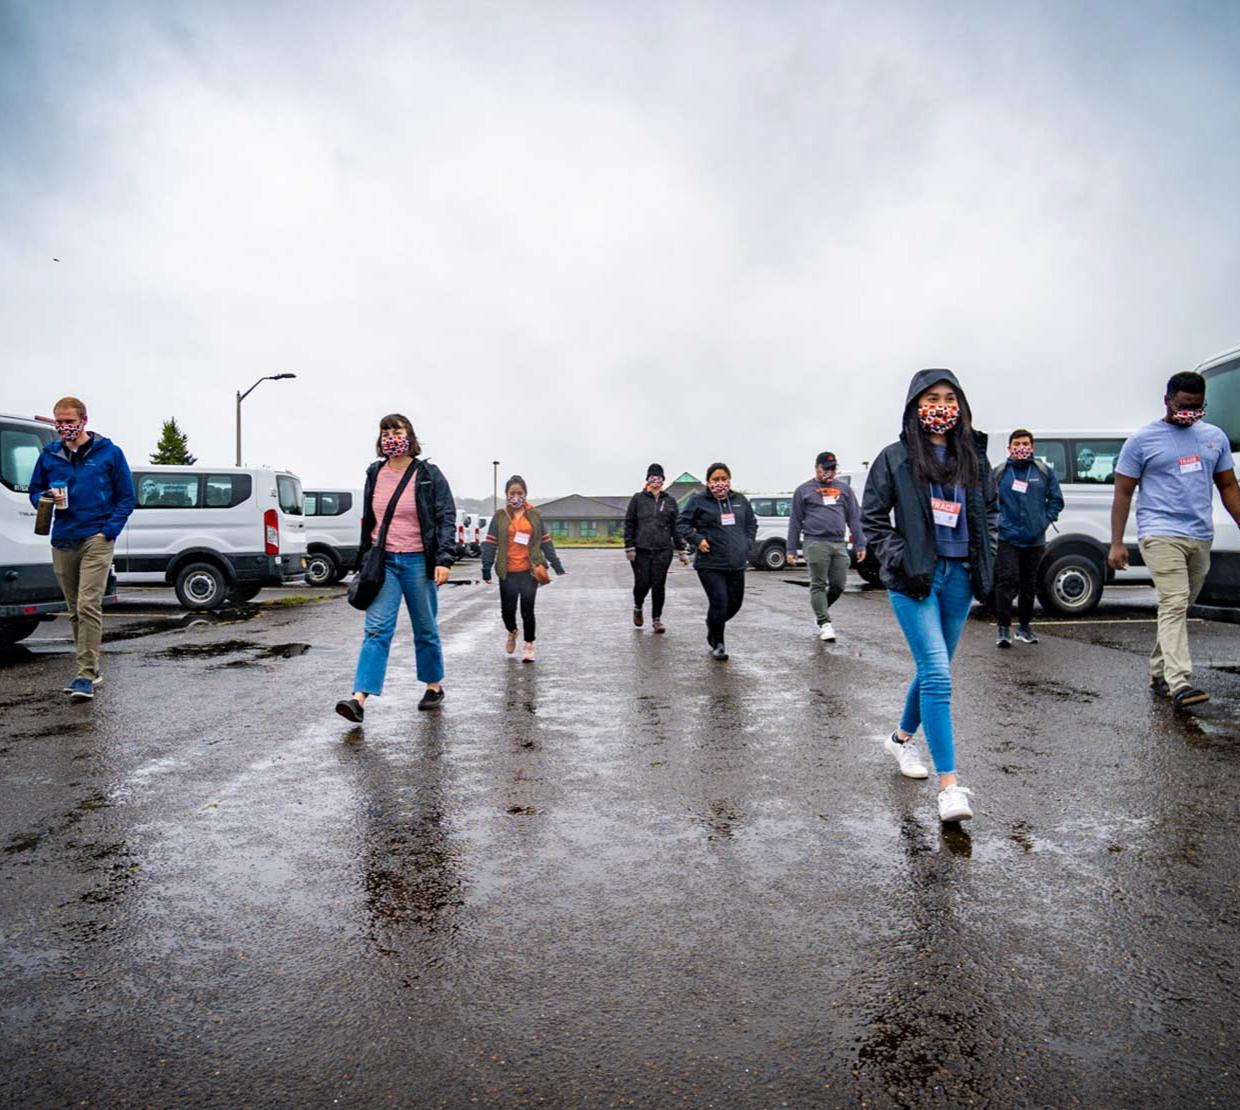 TRACE field staff walking along parking lot in Newport, Oregon on a cloudy and rainy day.